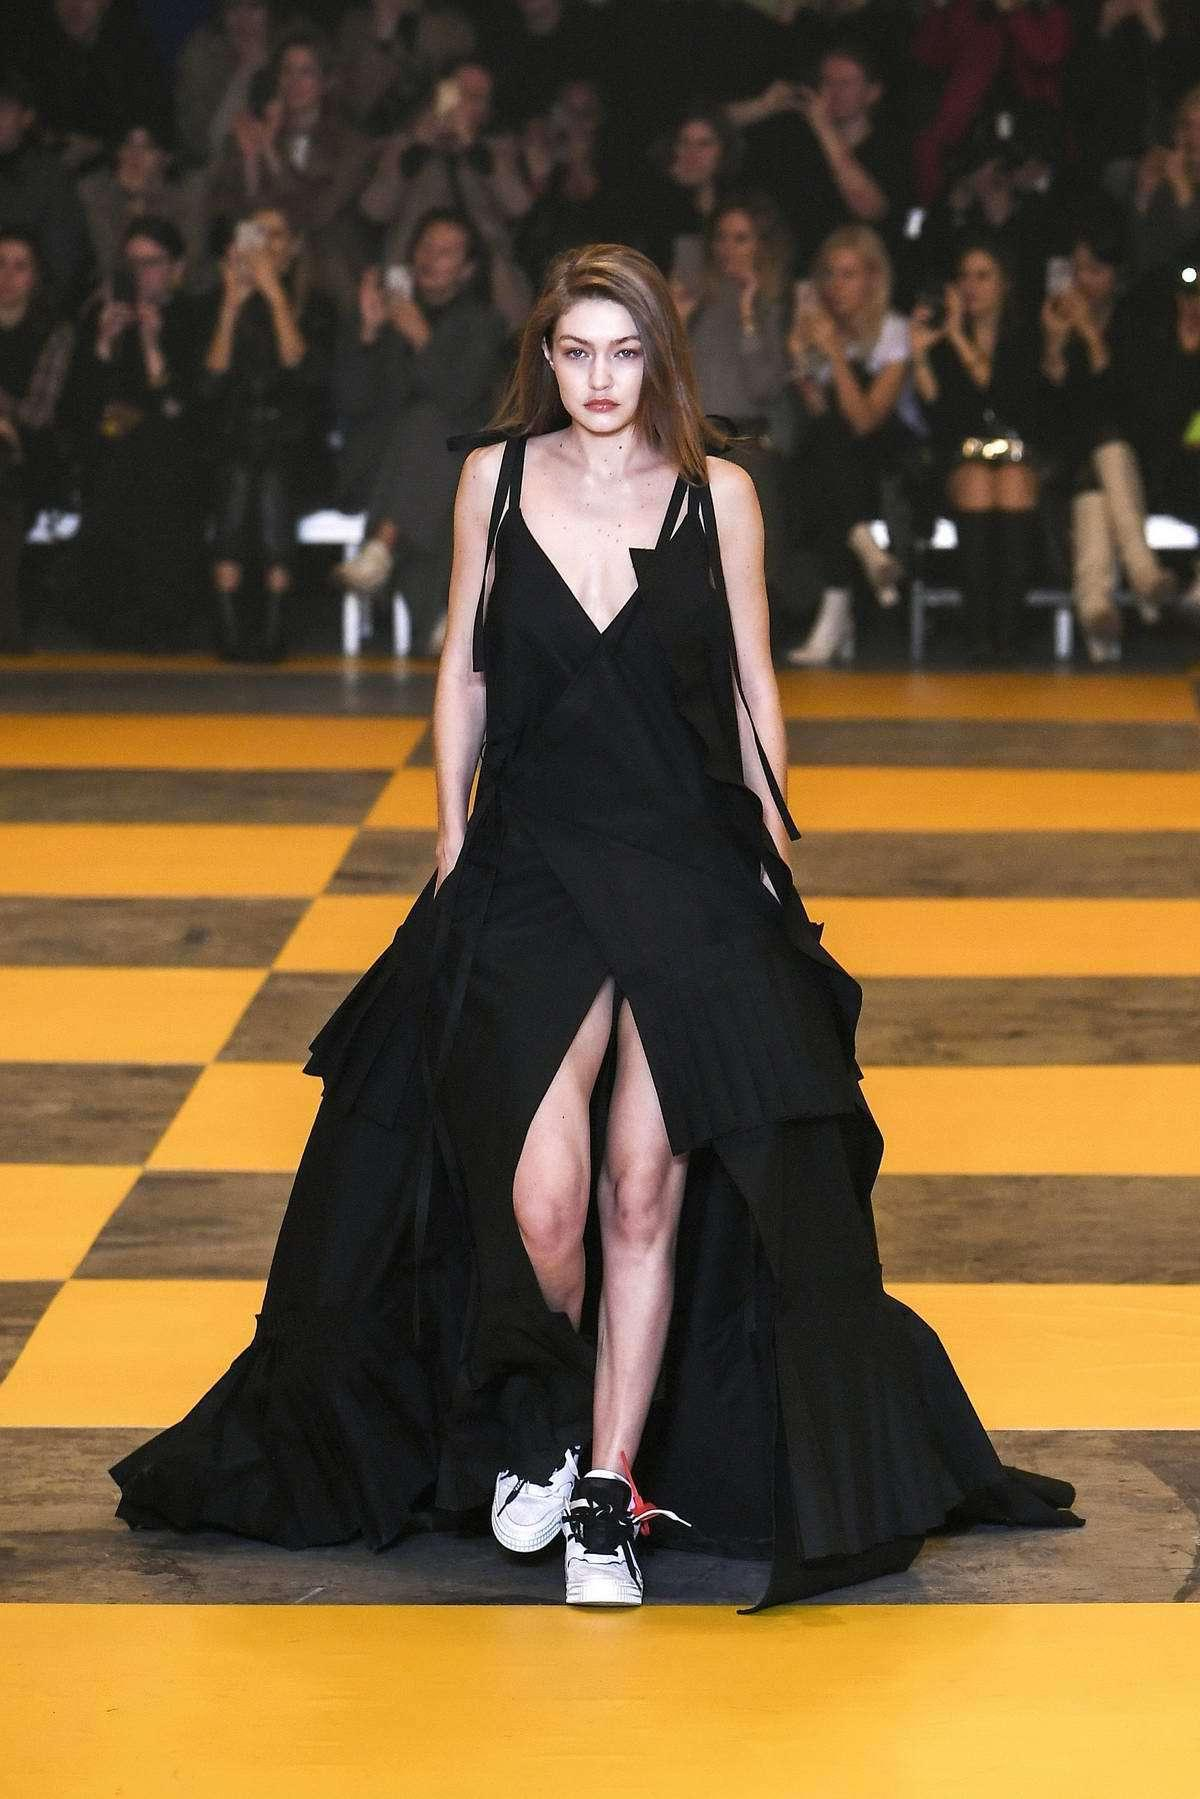 Gigi-hadid Shoes White Shoes Dress Black Dress Mai Dress Sneakers Gigi Hadid Runway Model cover image